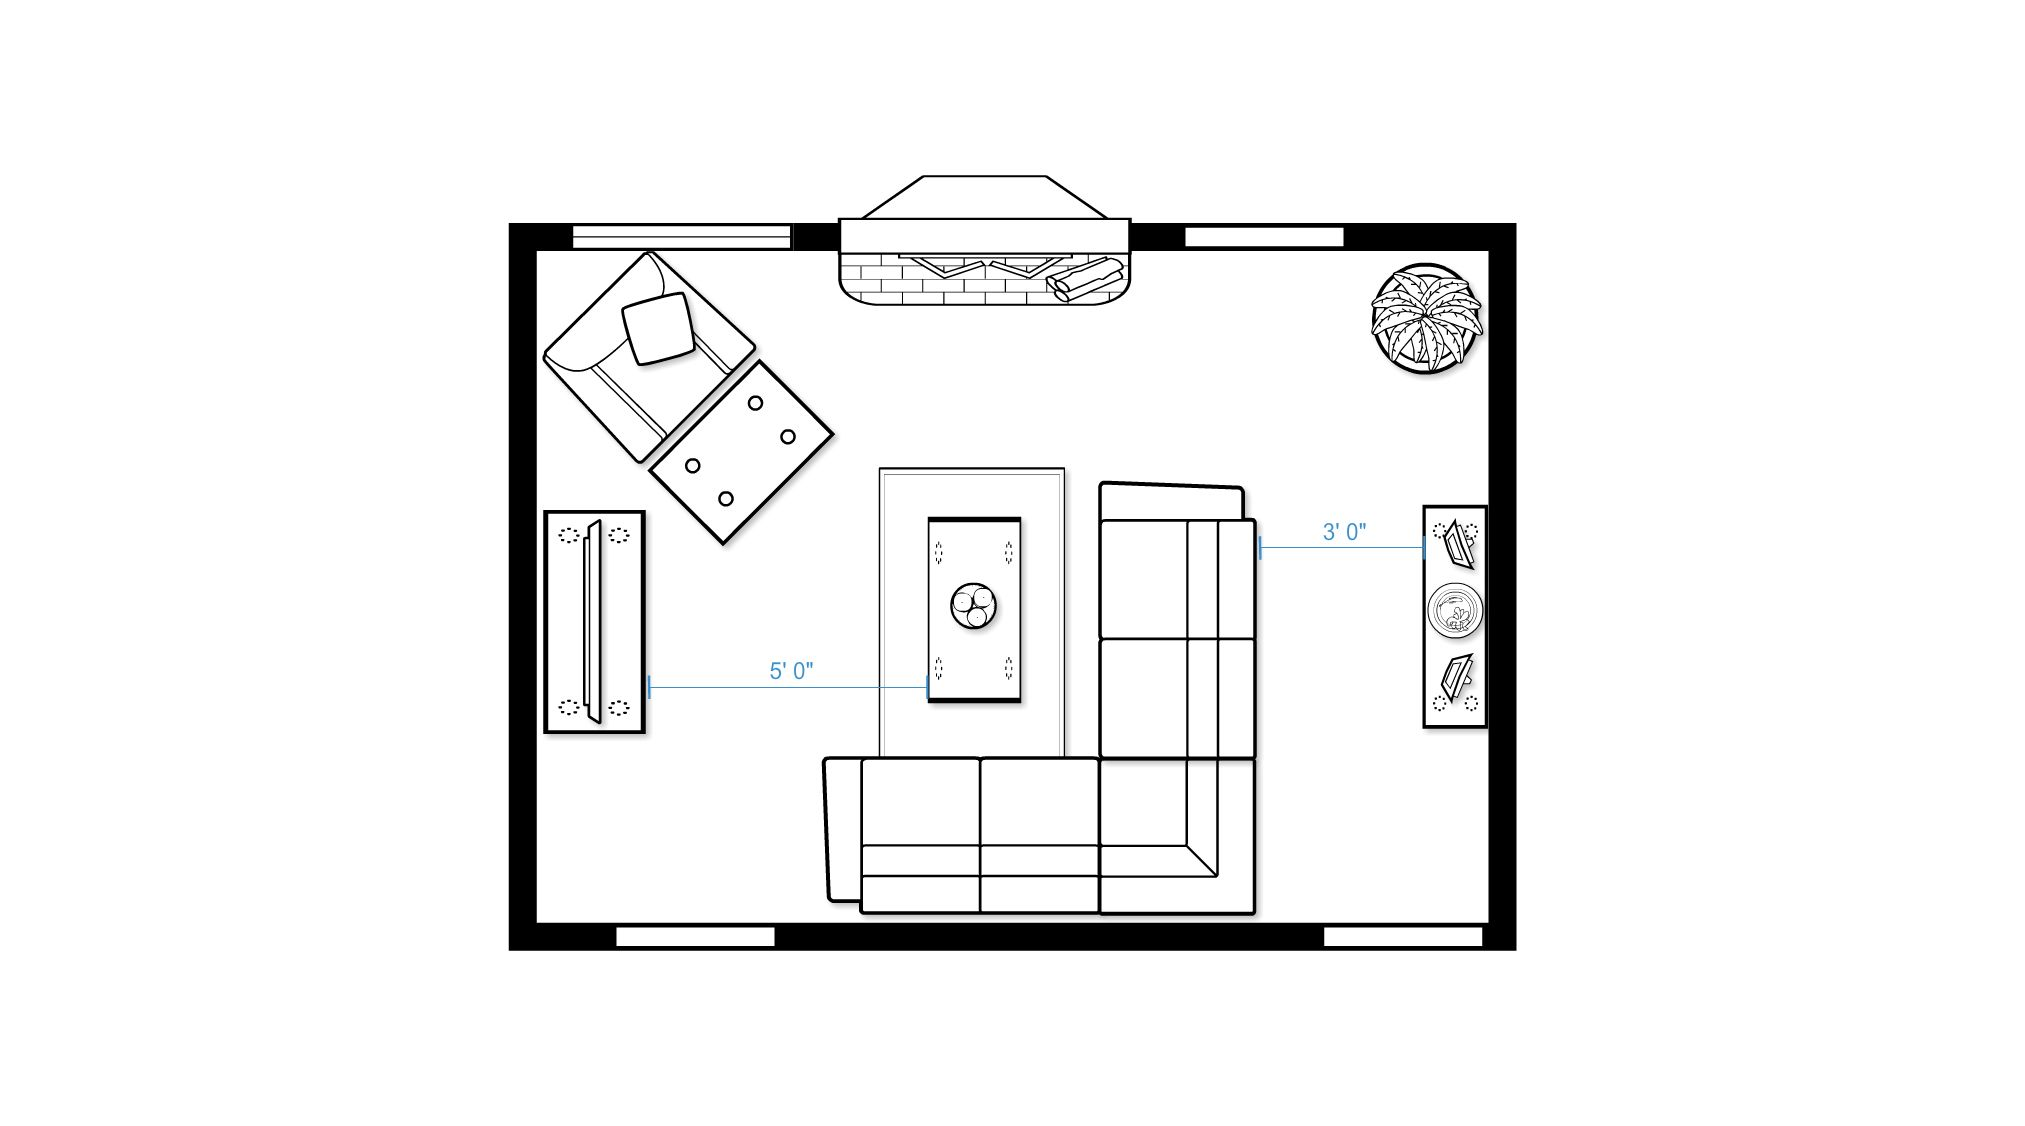 Autocad Toilet Elevation Drawing | Free download best Autocad Toilet